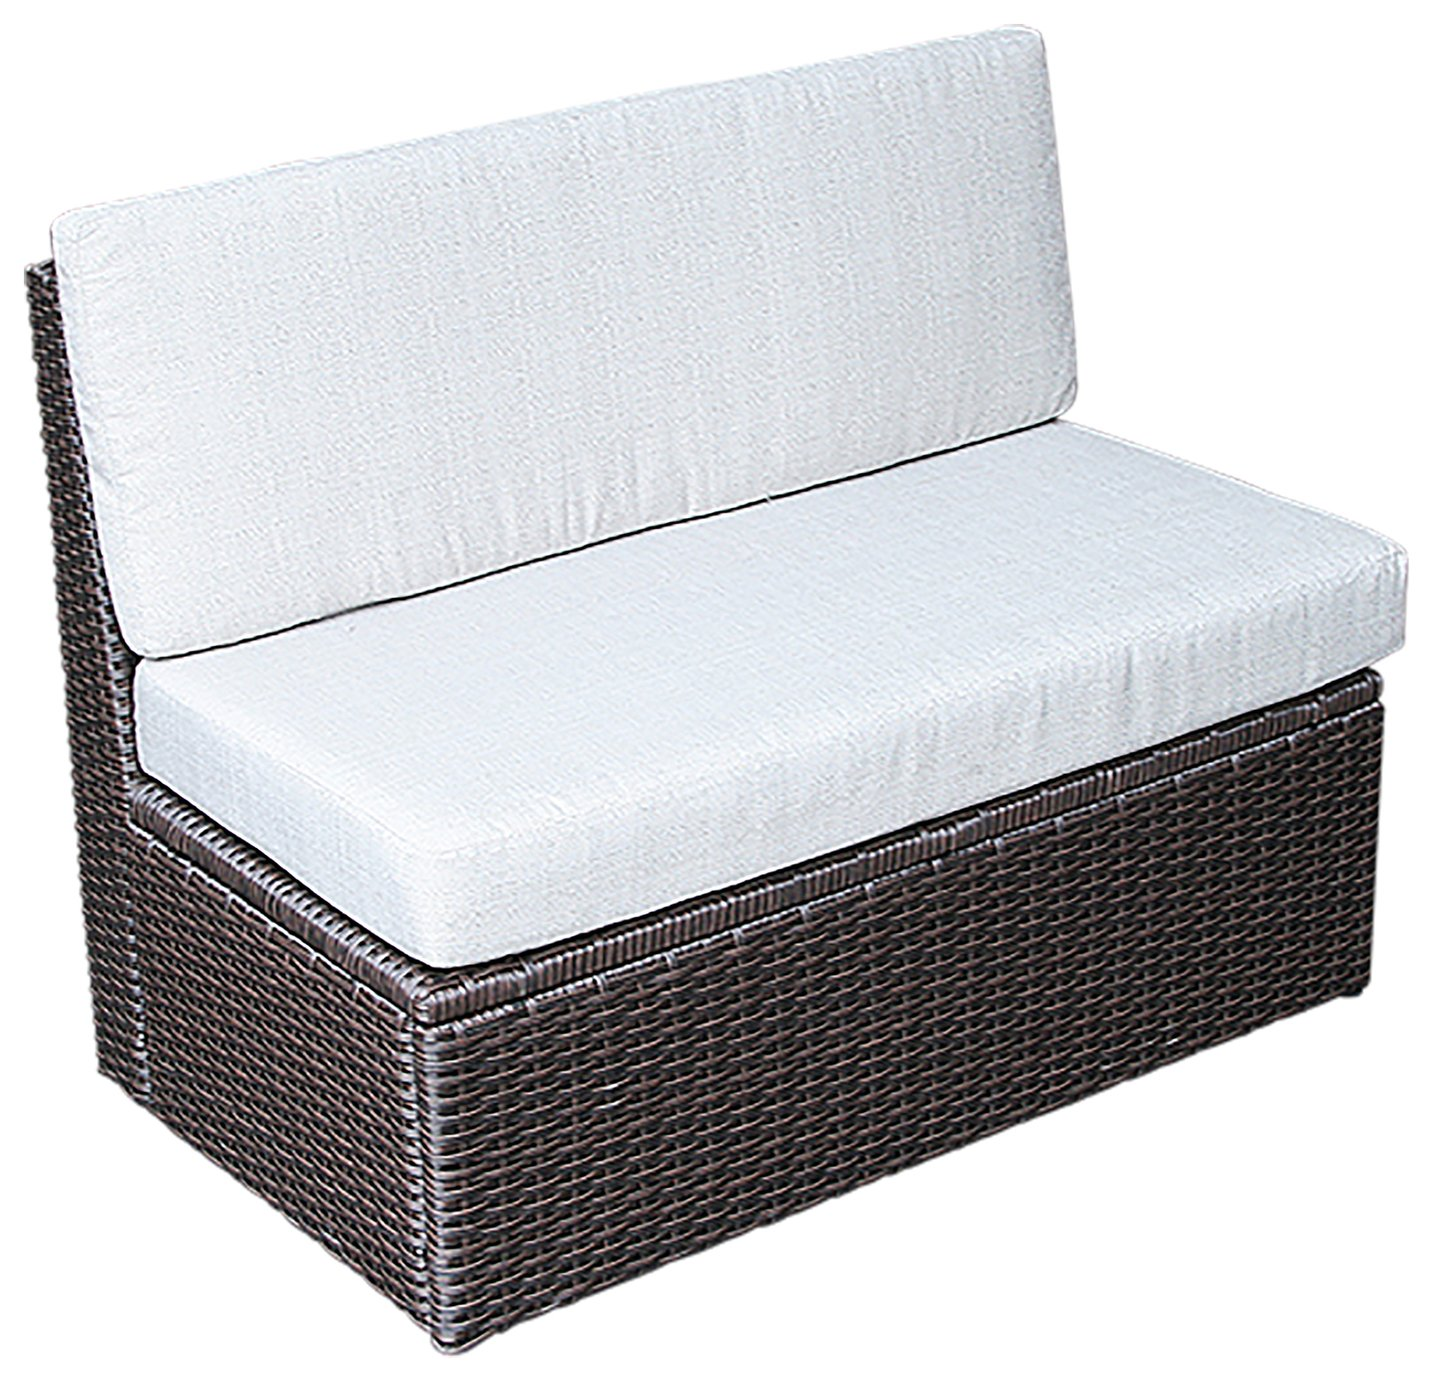 Canadian Spa Love Seat Square Surround Furniture at Argos review